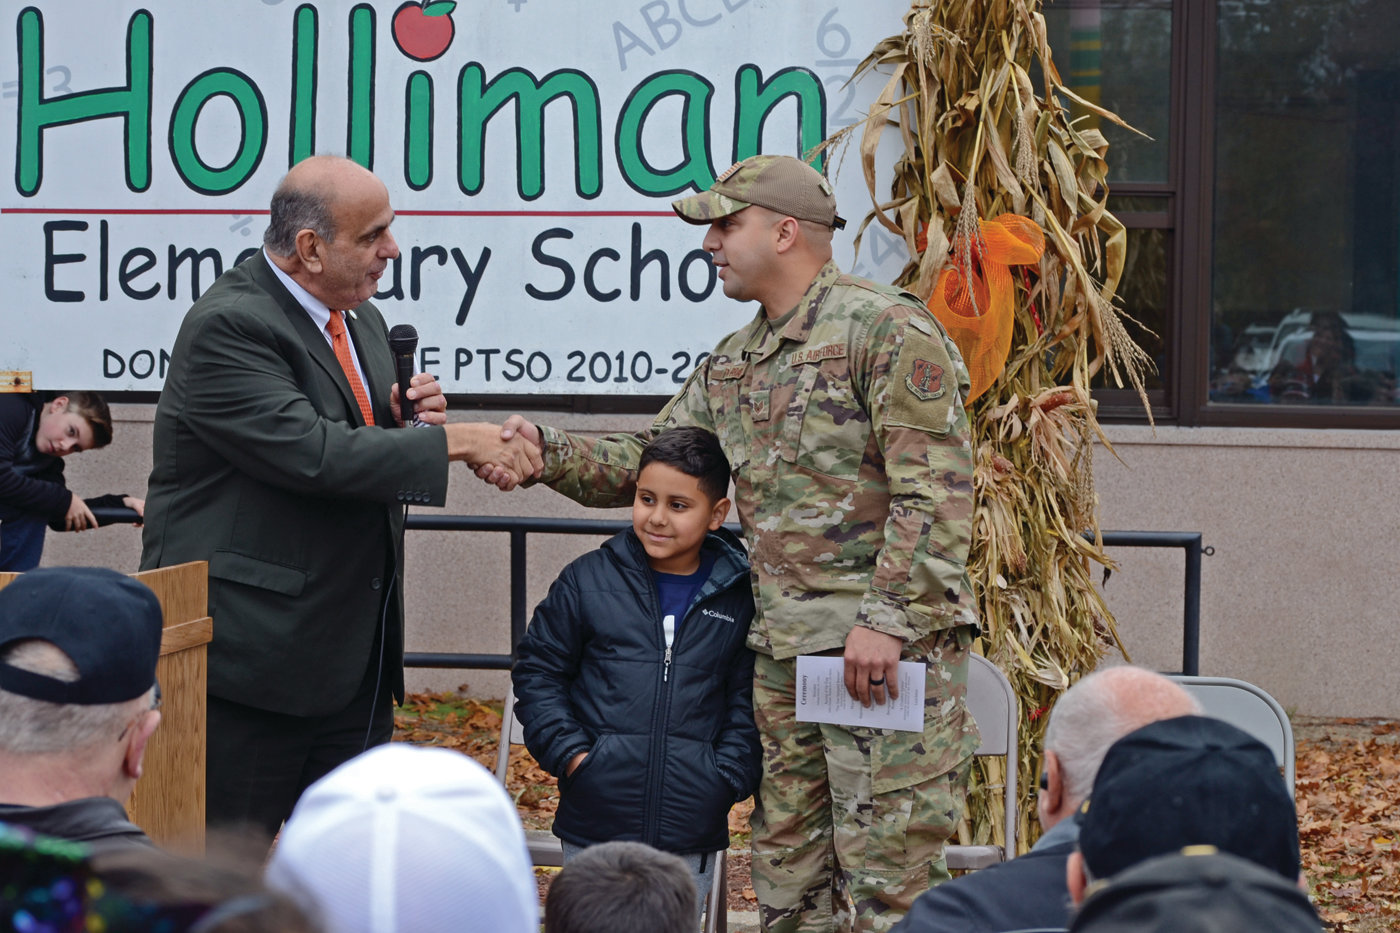 EXAMPLE OF SERVICE: Mayor Joseph Solomon asked Army National Guardsman Manuel Parra, and his son Manny, a student at Holliman, to be recognized at the ceremony as an example of the sacrifices made by service men and women.